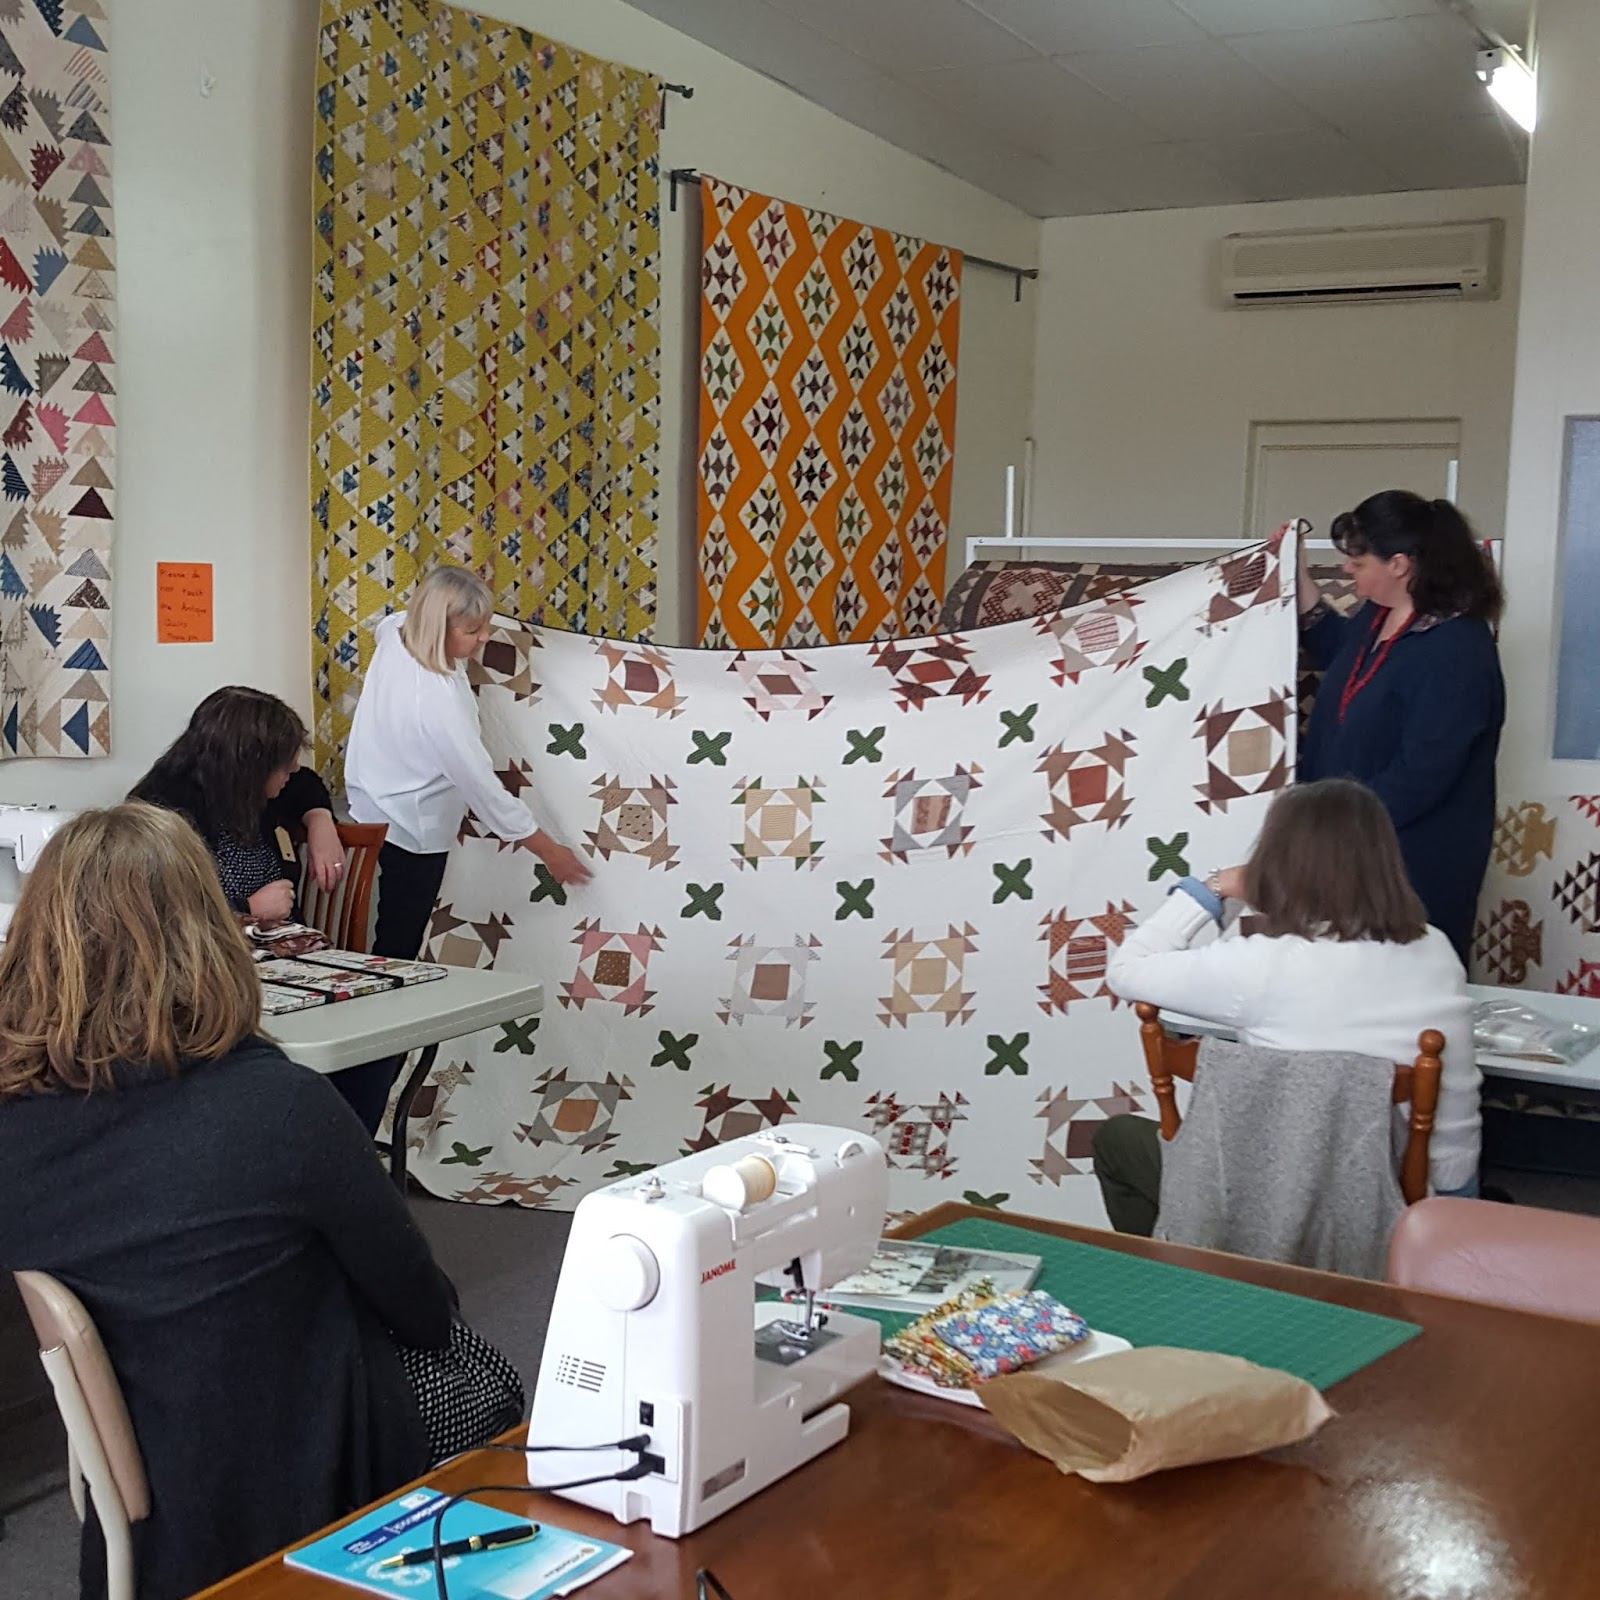 Chester Criswell Quilt And Friends